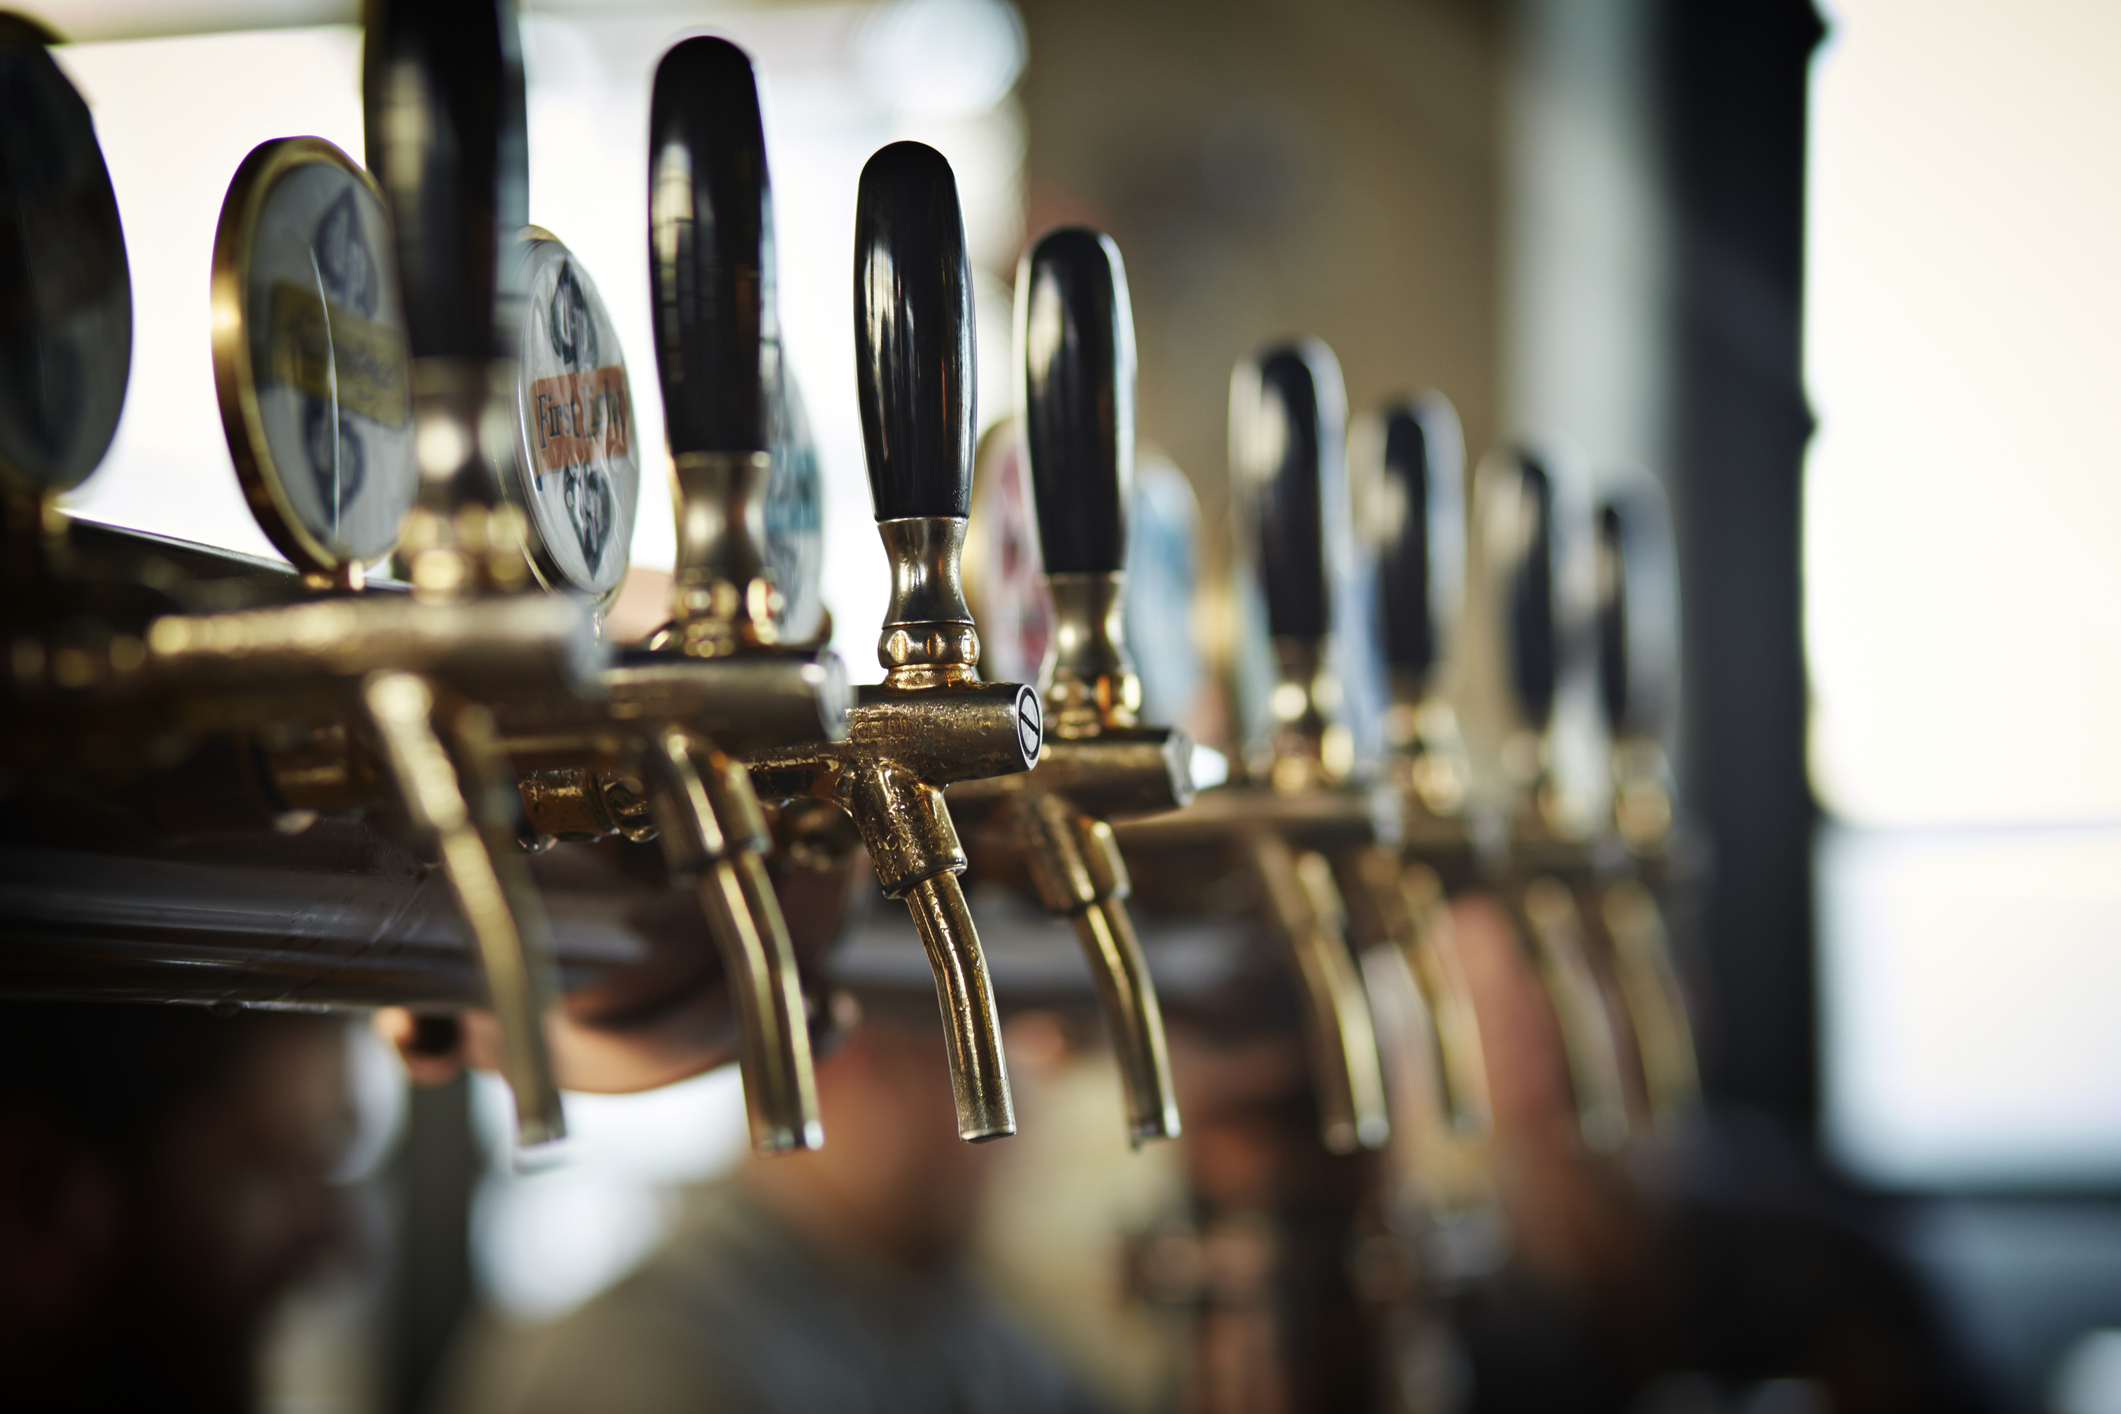 How do you get into craft beer without becoming a total snob about it?